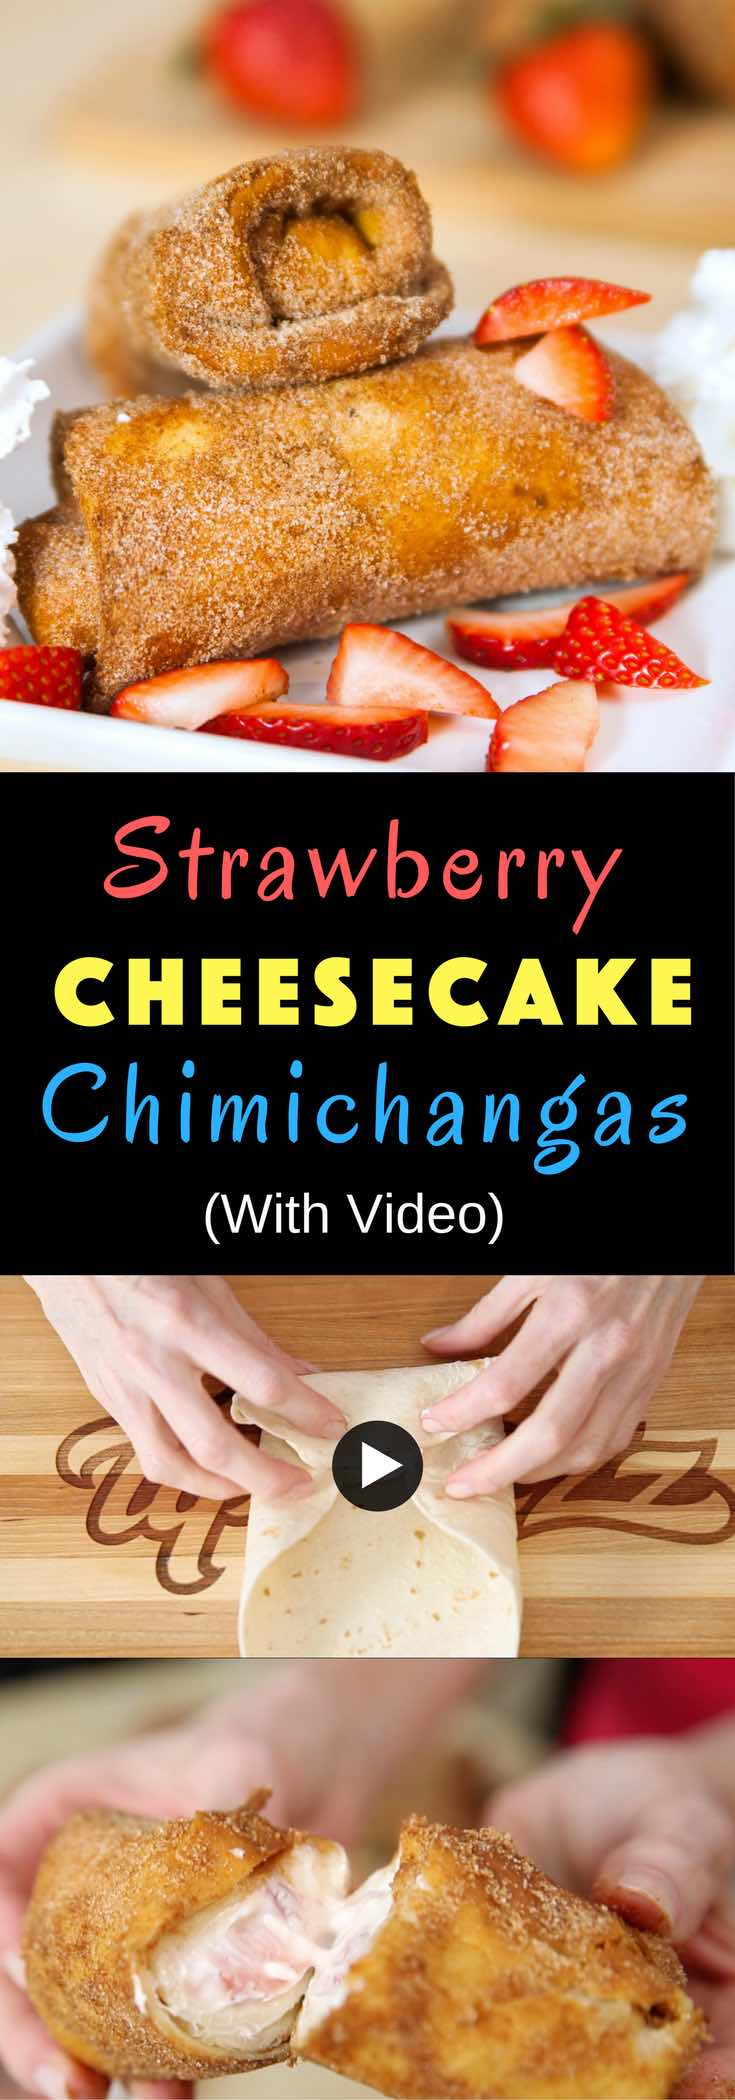 Strawberry Cheesecake Chimichangas are one of the easiest desserts recipes. Creamy and sweet strawberry cheesecake filings wrapped with tortilla flour, and then fried to perfect golden brown. Made with fresh strawberries. So Good! Quick and easy recipe. Video recipe. | Tipbuzz.com